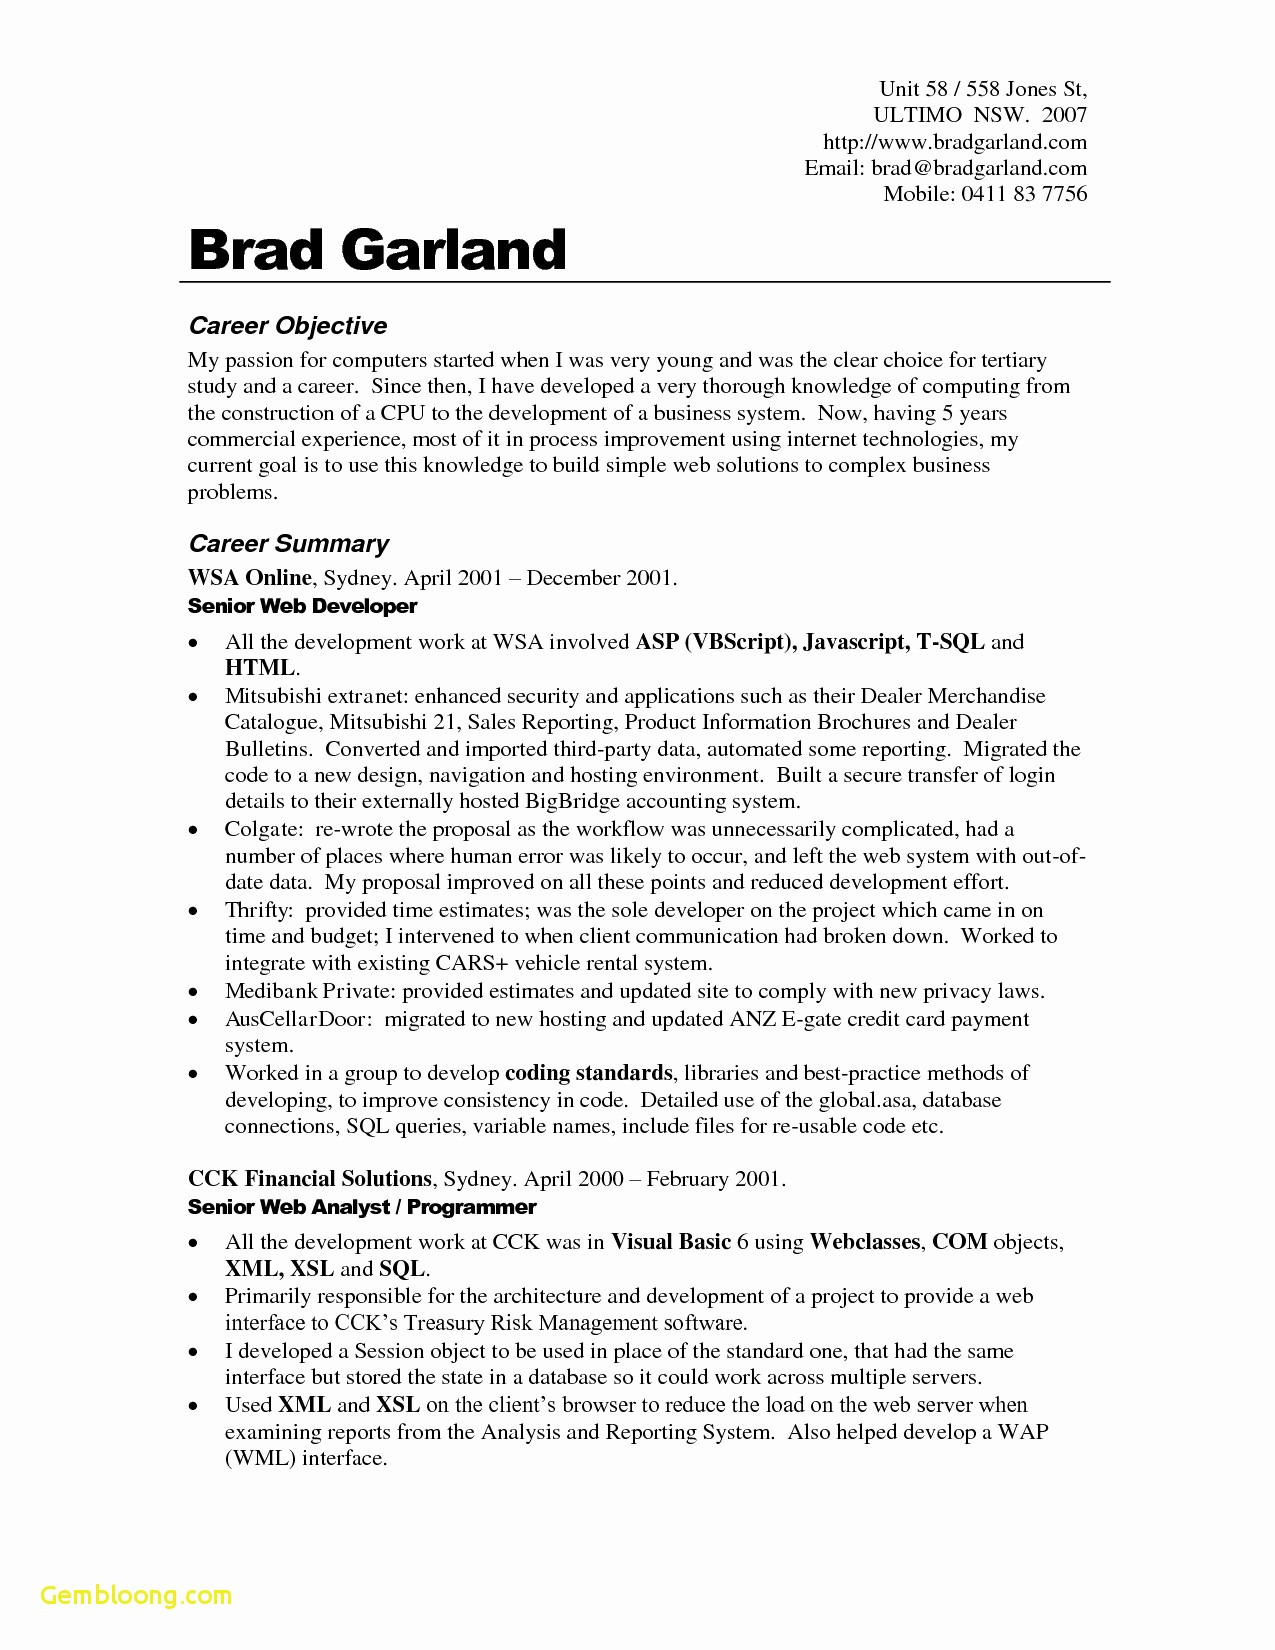 Modern Resume and Cover Letter Template - Resume Cover Letter Template Free Download Inspirational Modern Free